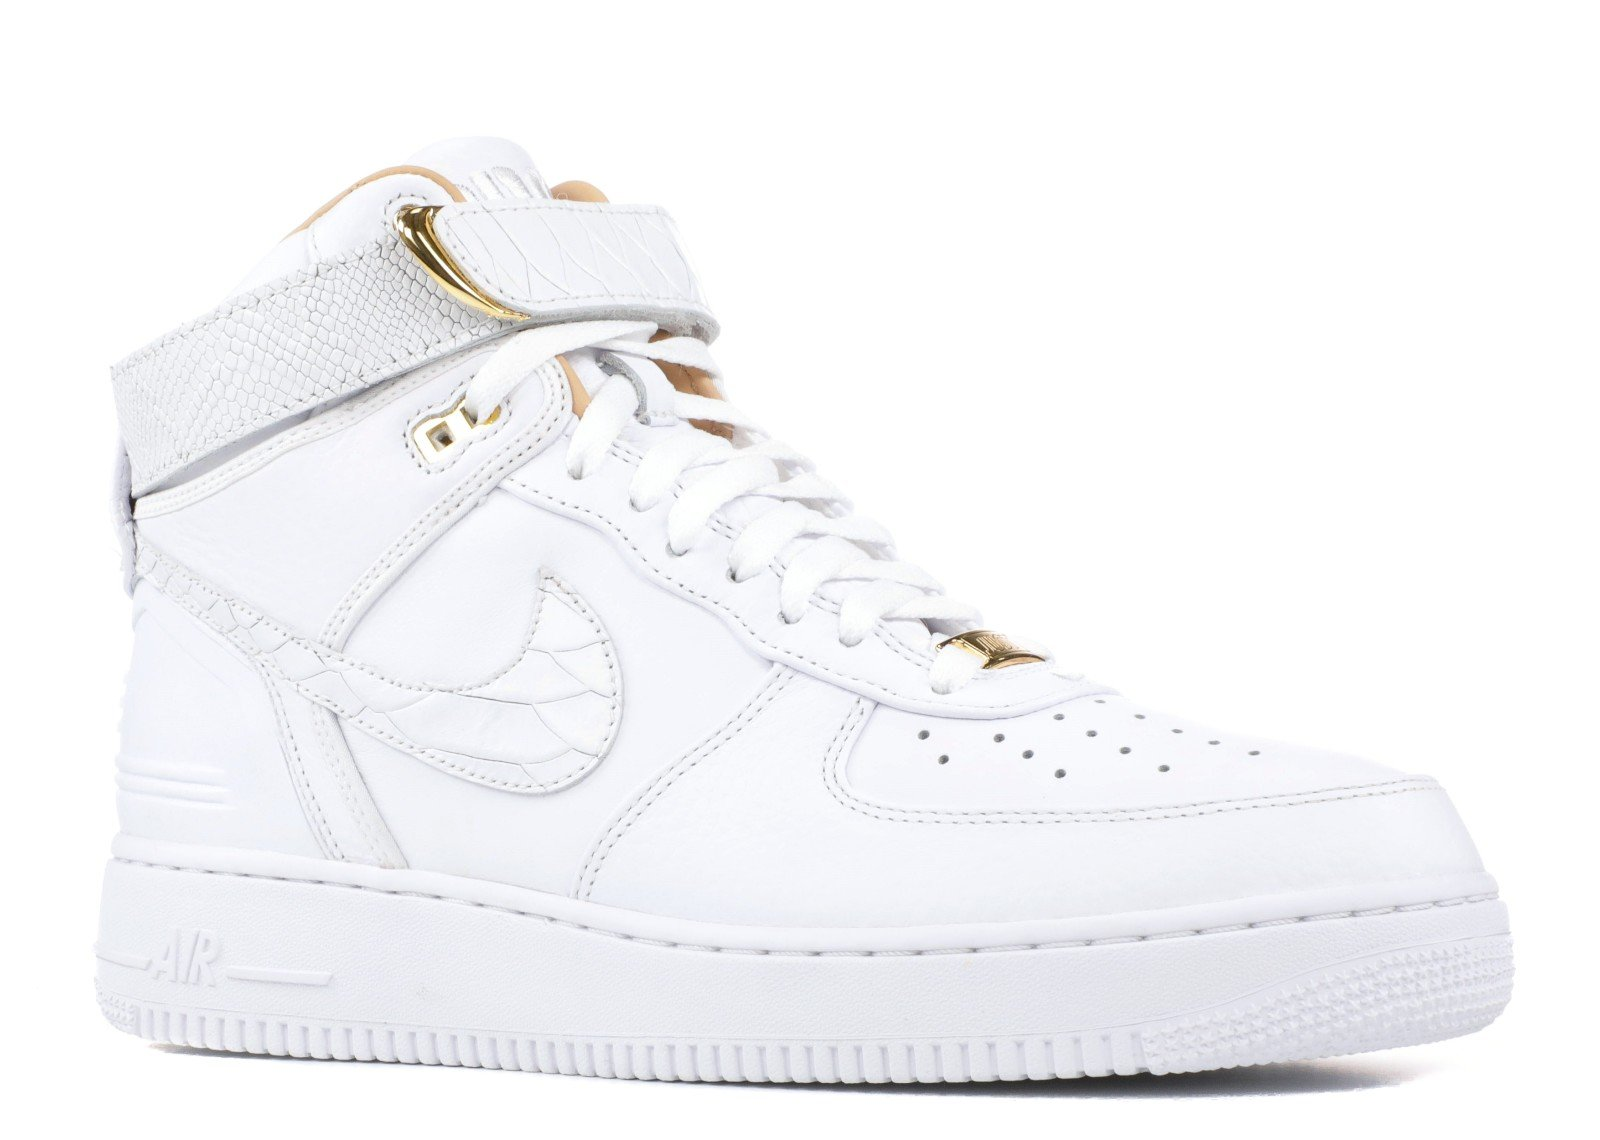 Nike Air Force 1 High '07 LV8 Men's Shoes Wolf Grey